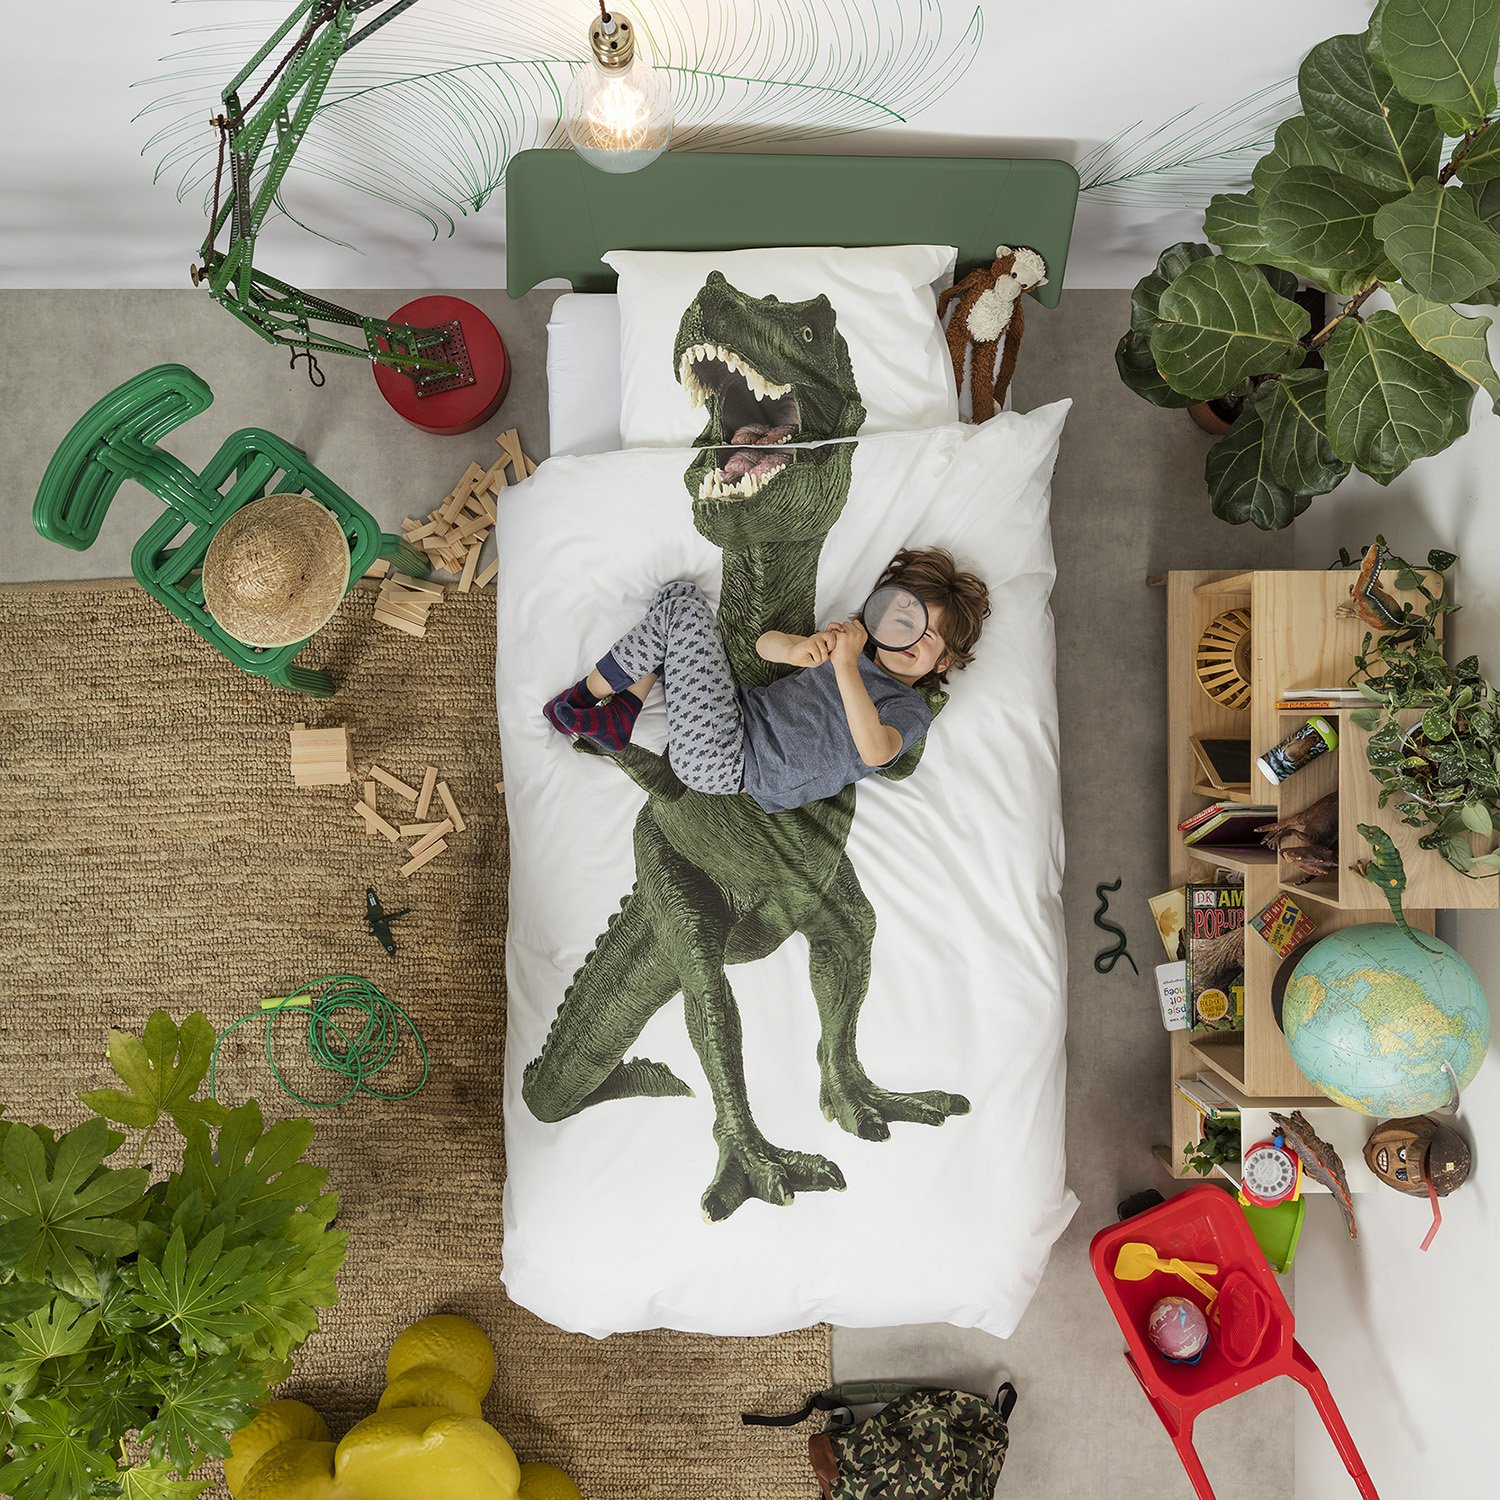 Dinosaur Duvet Cover and Pillow Case Set for Kids by SNURK – Full / Queen